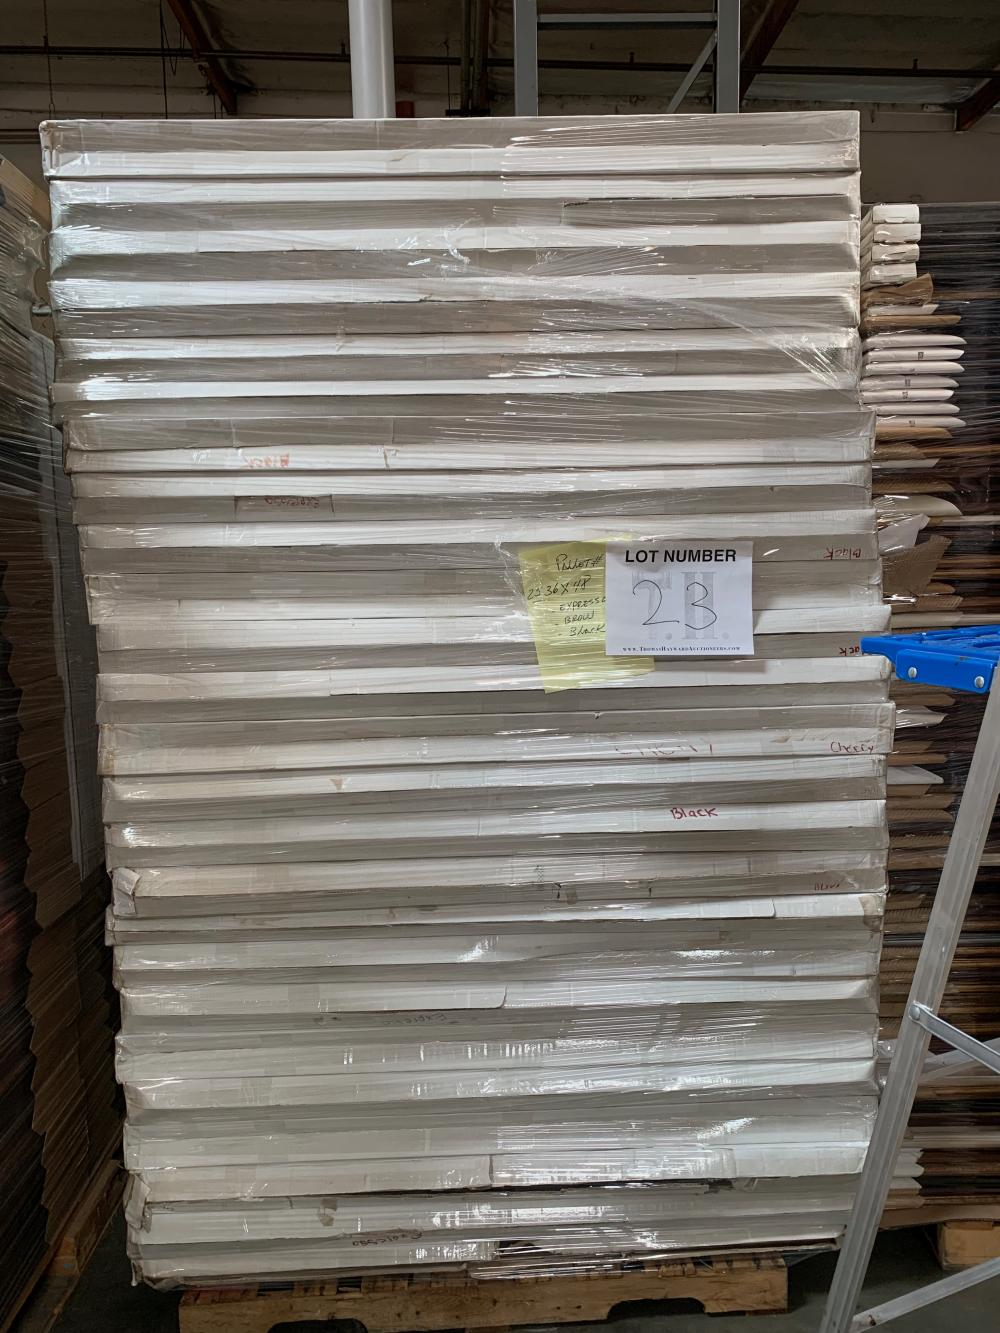 Pallet of Picture Frames 23